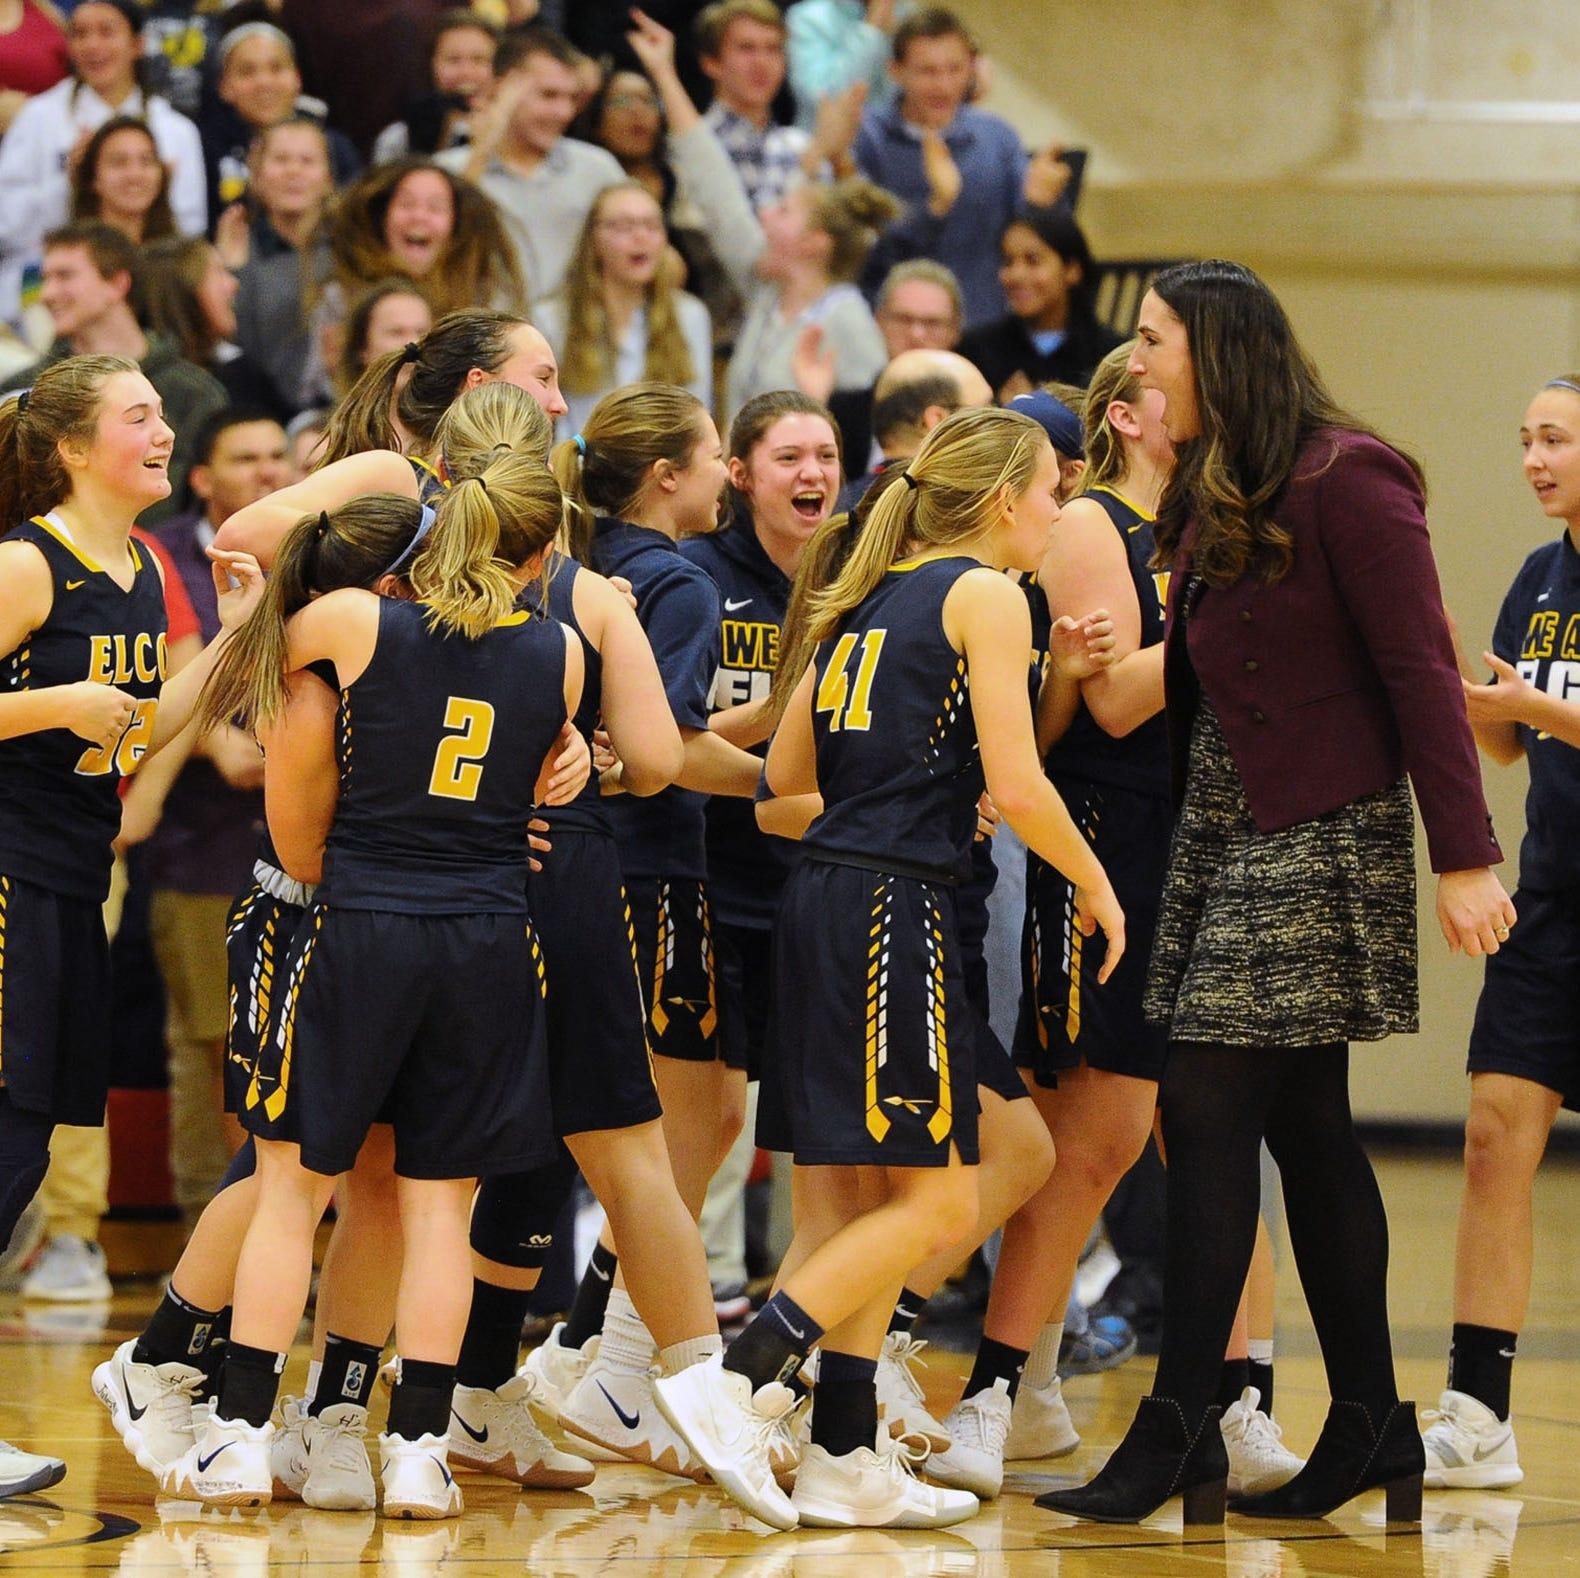 Elco girls find a way, stun Cedar Crest in OT in L-L semis